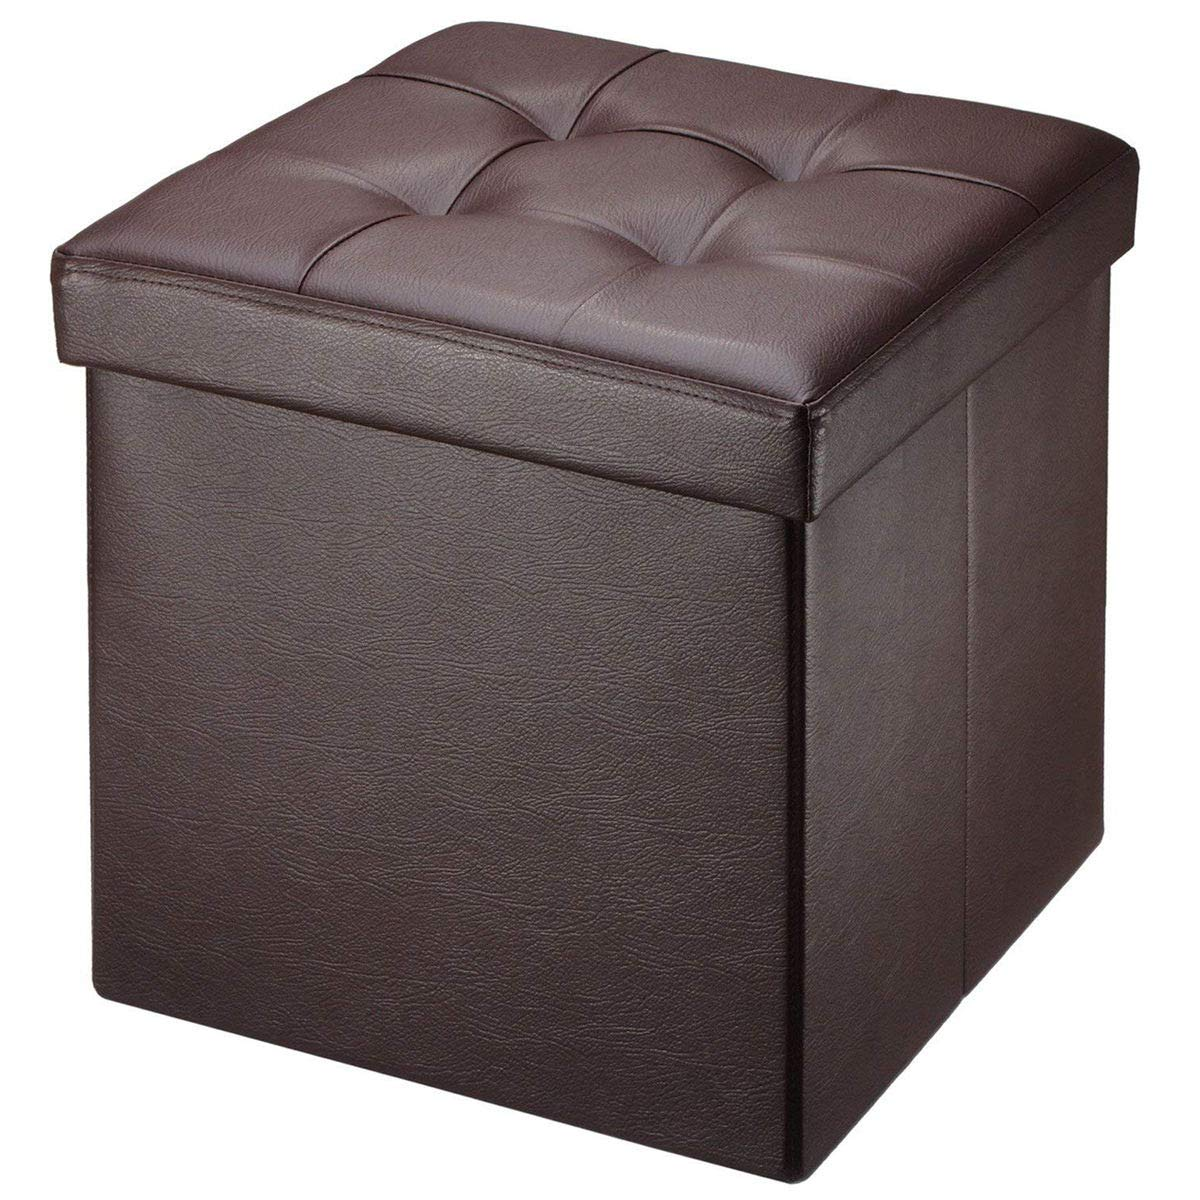 BRIAN DANY Faux Leather Folding Storage Ottoman Bench Seat Foot Rest Stool Coffee Table 15 X15 X15 Brown